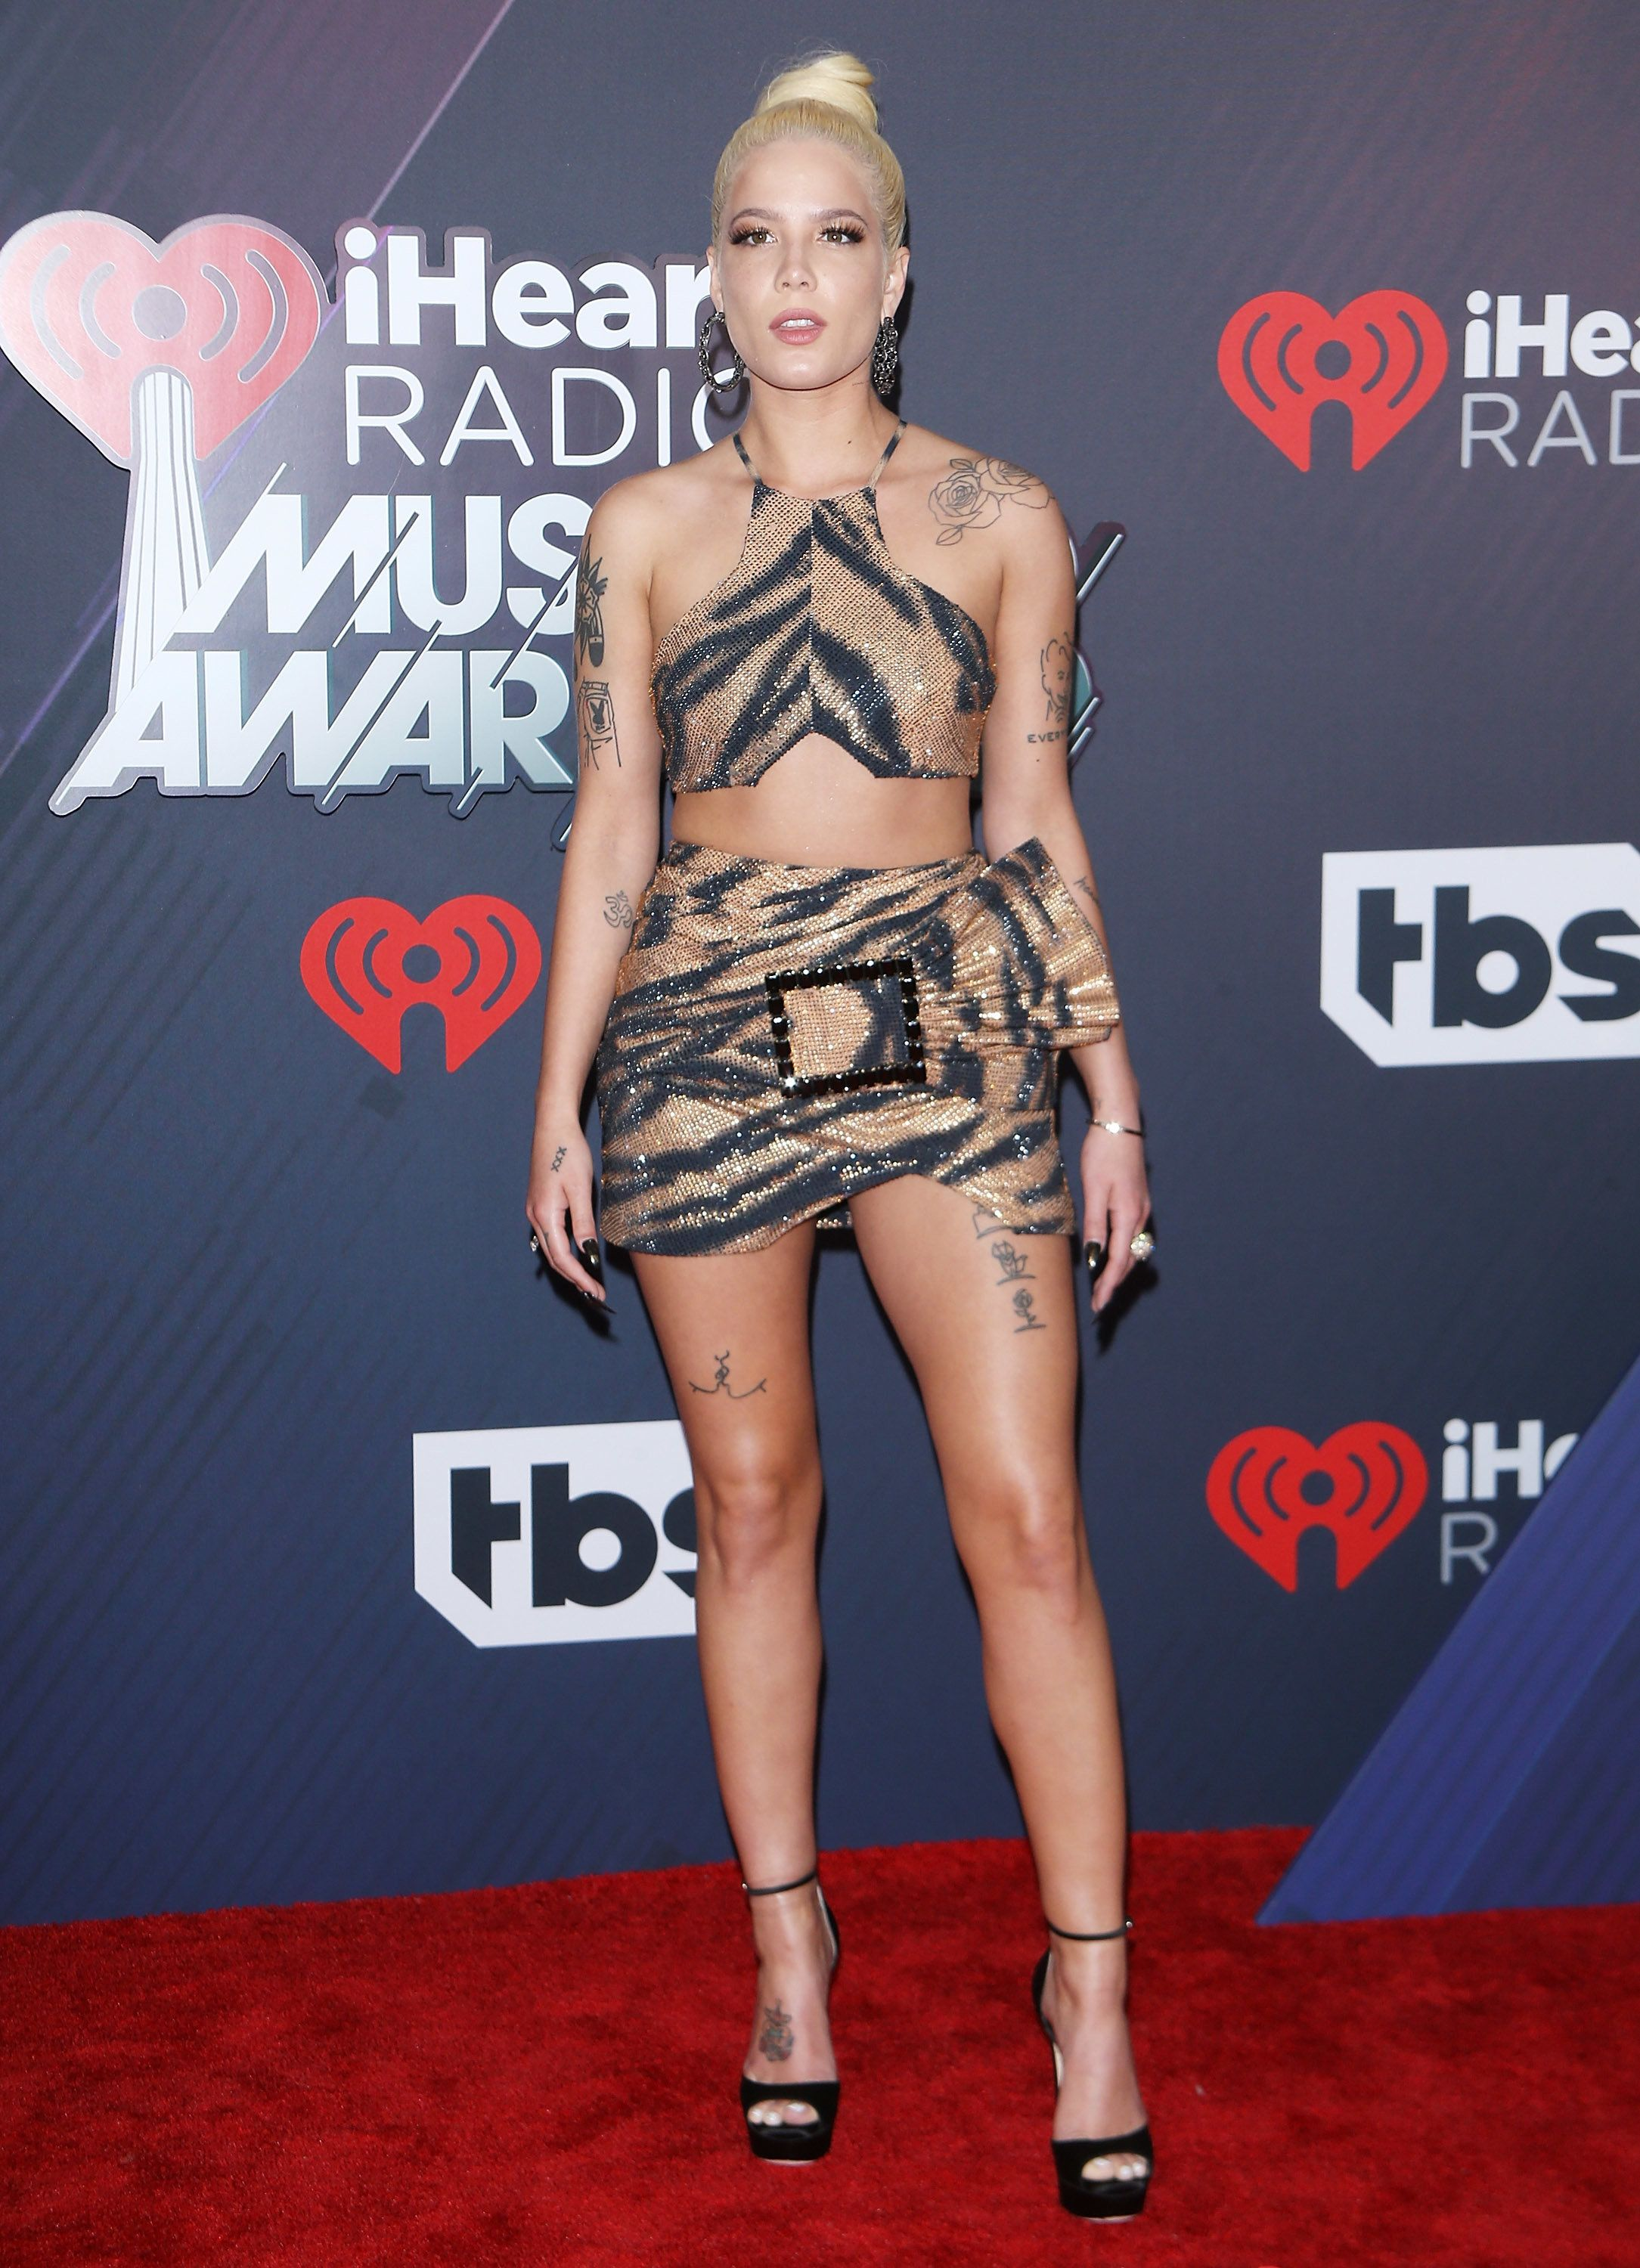 Wearing an animal-print Raisa & Vanessa outfit at the iHeartRadio Music Awards on March 11 in Inglewood, California.